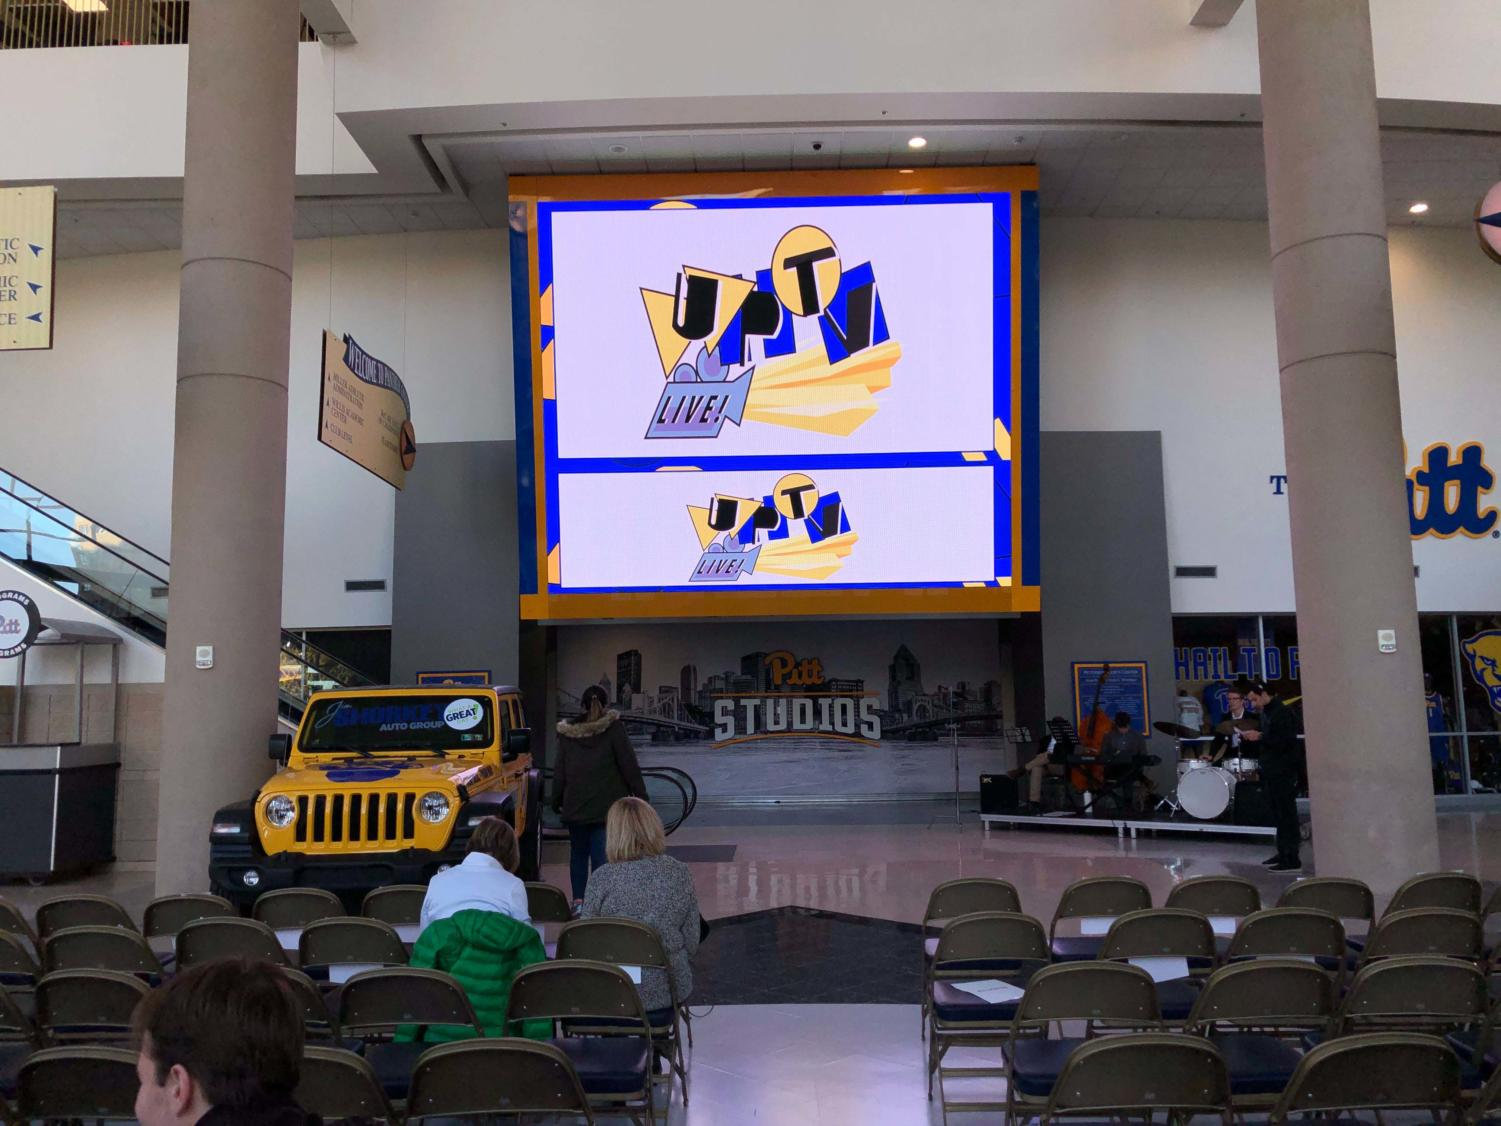 UPTV partnered with Pitt Studios for its first live broadcast from the Petersen Events Center, which included 10 UPTV shows.